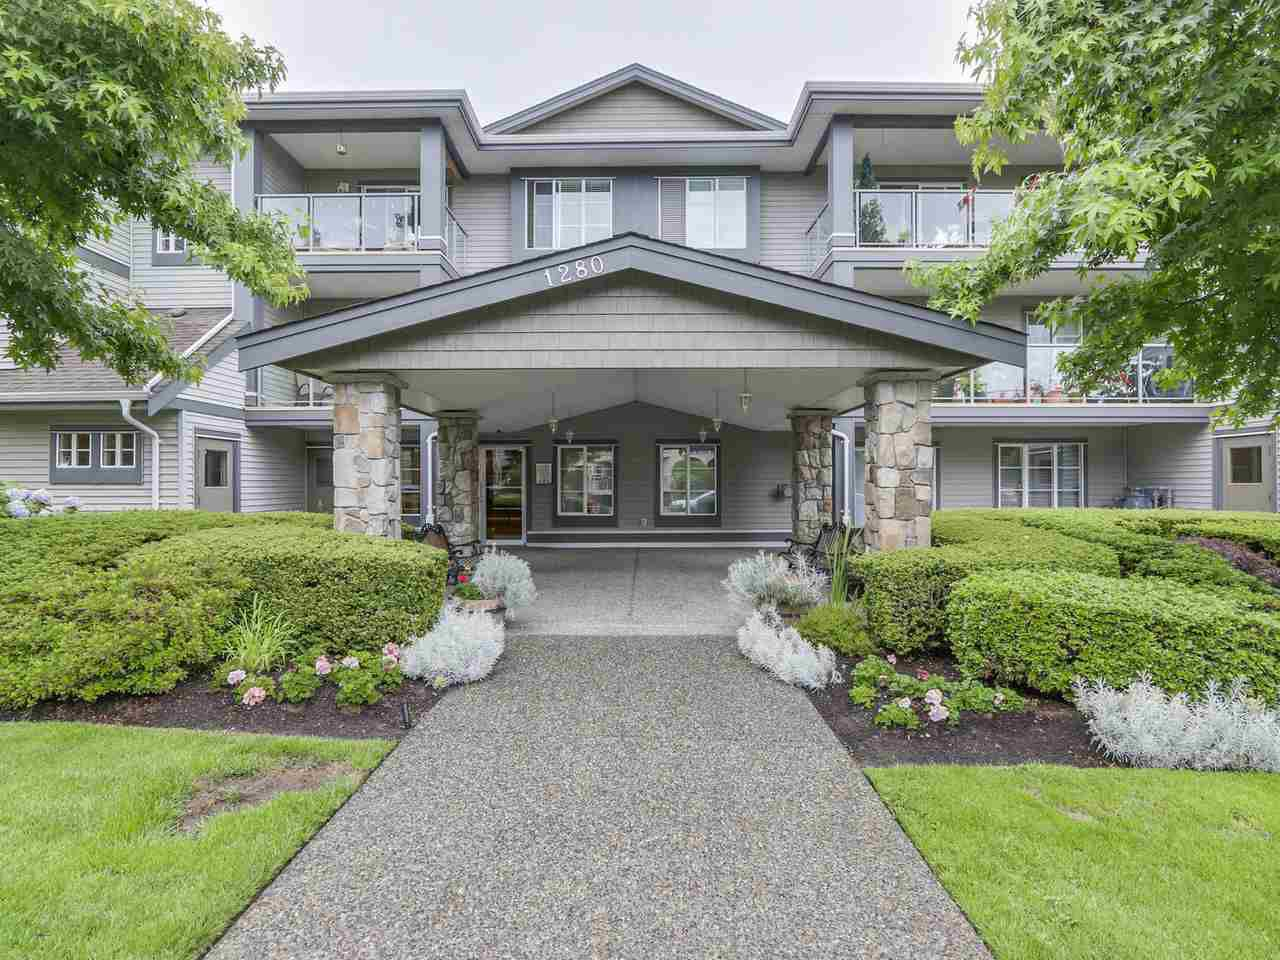 Main Photo: 205 1280 MERKLIN Street: White Rock Condo for sale (South Surrey White Rock)  : MLS®# R2088301